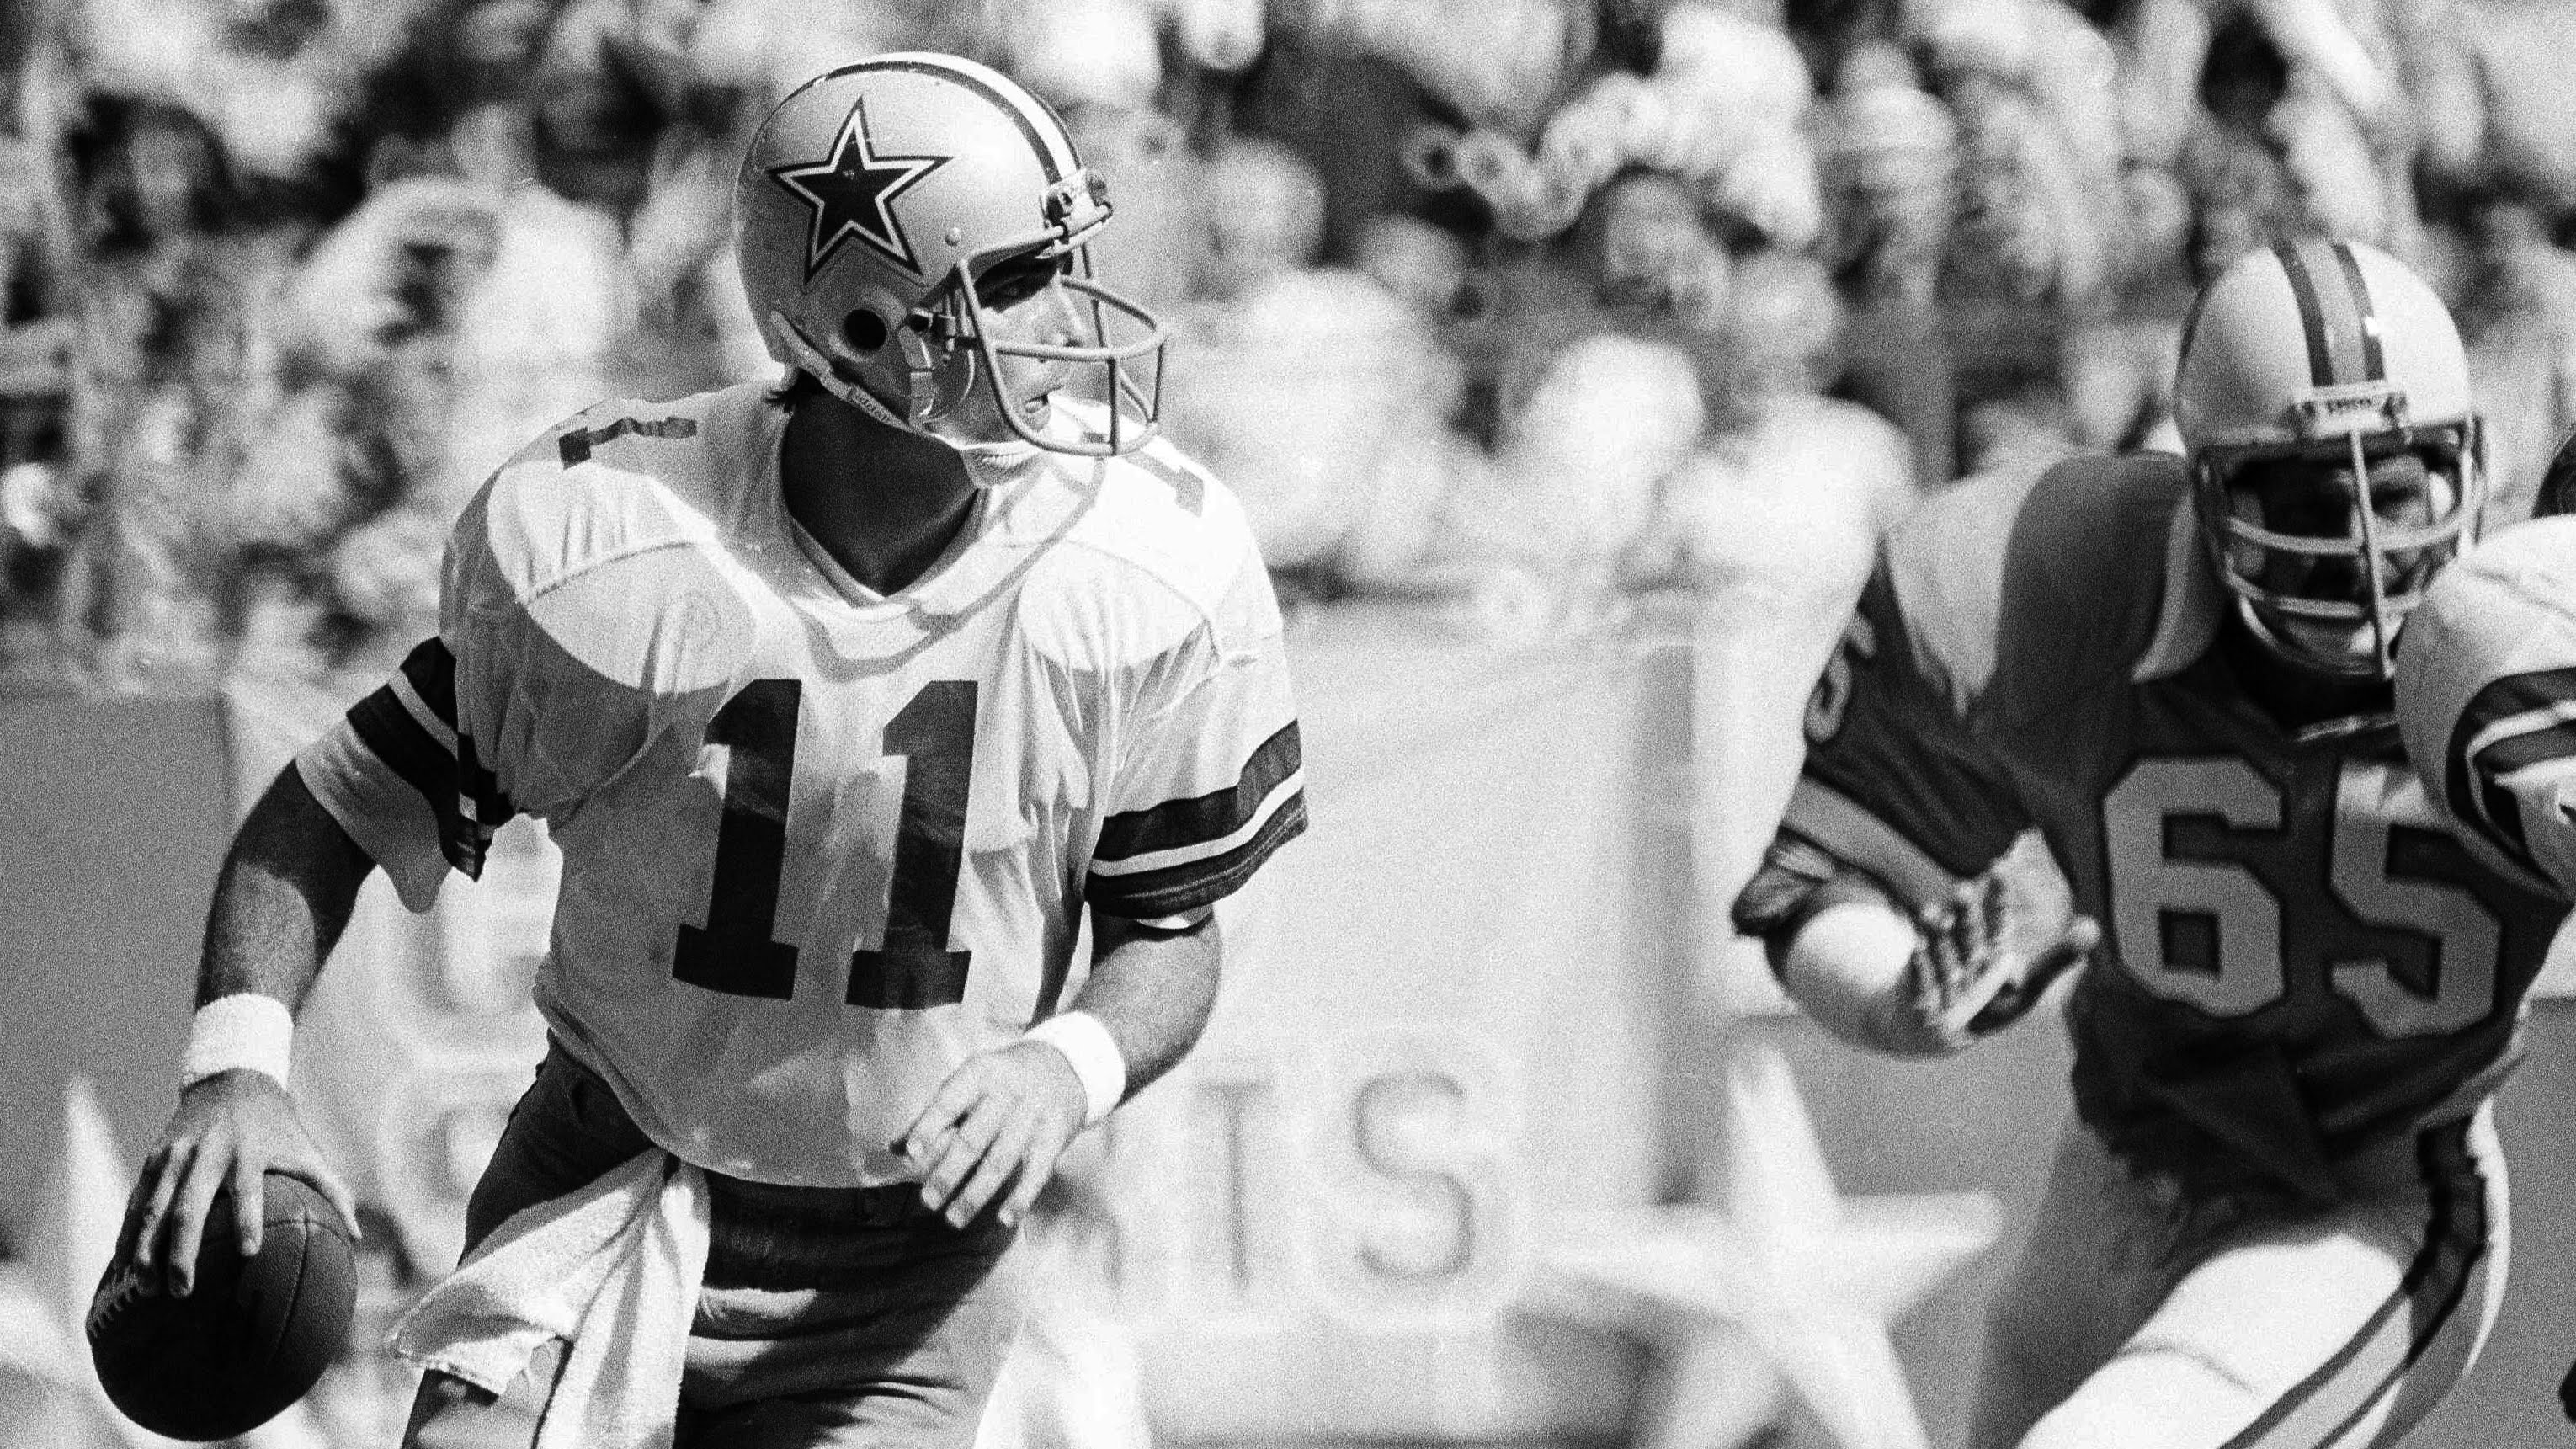 Cowboys quarterback Danny White (11) threw for 258 yards to help Dallas hand the Bucs their first loss of the season after a 2-0 start. (Associated Press, 1980)